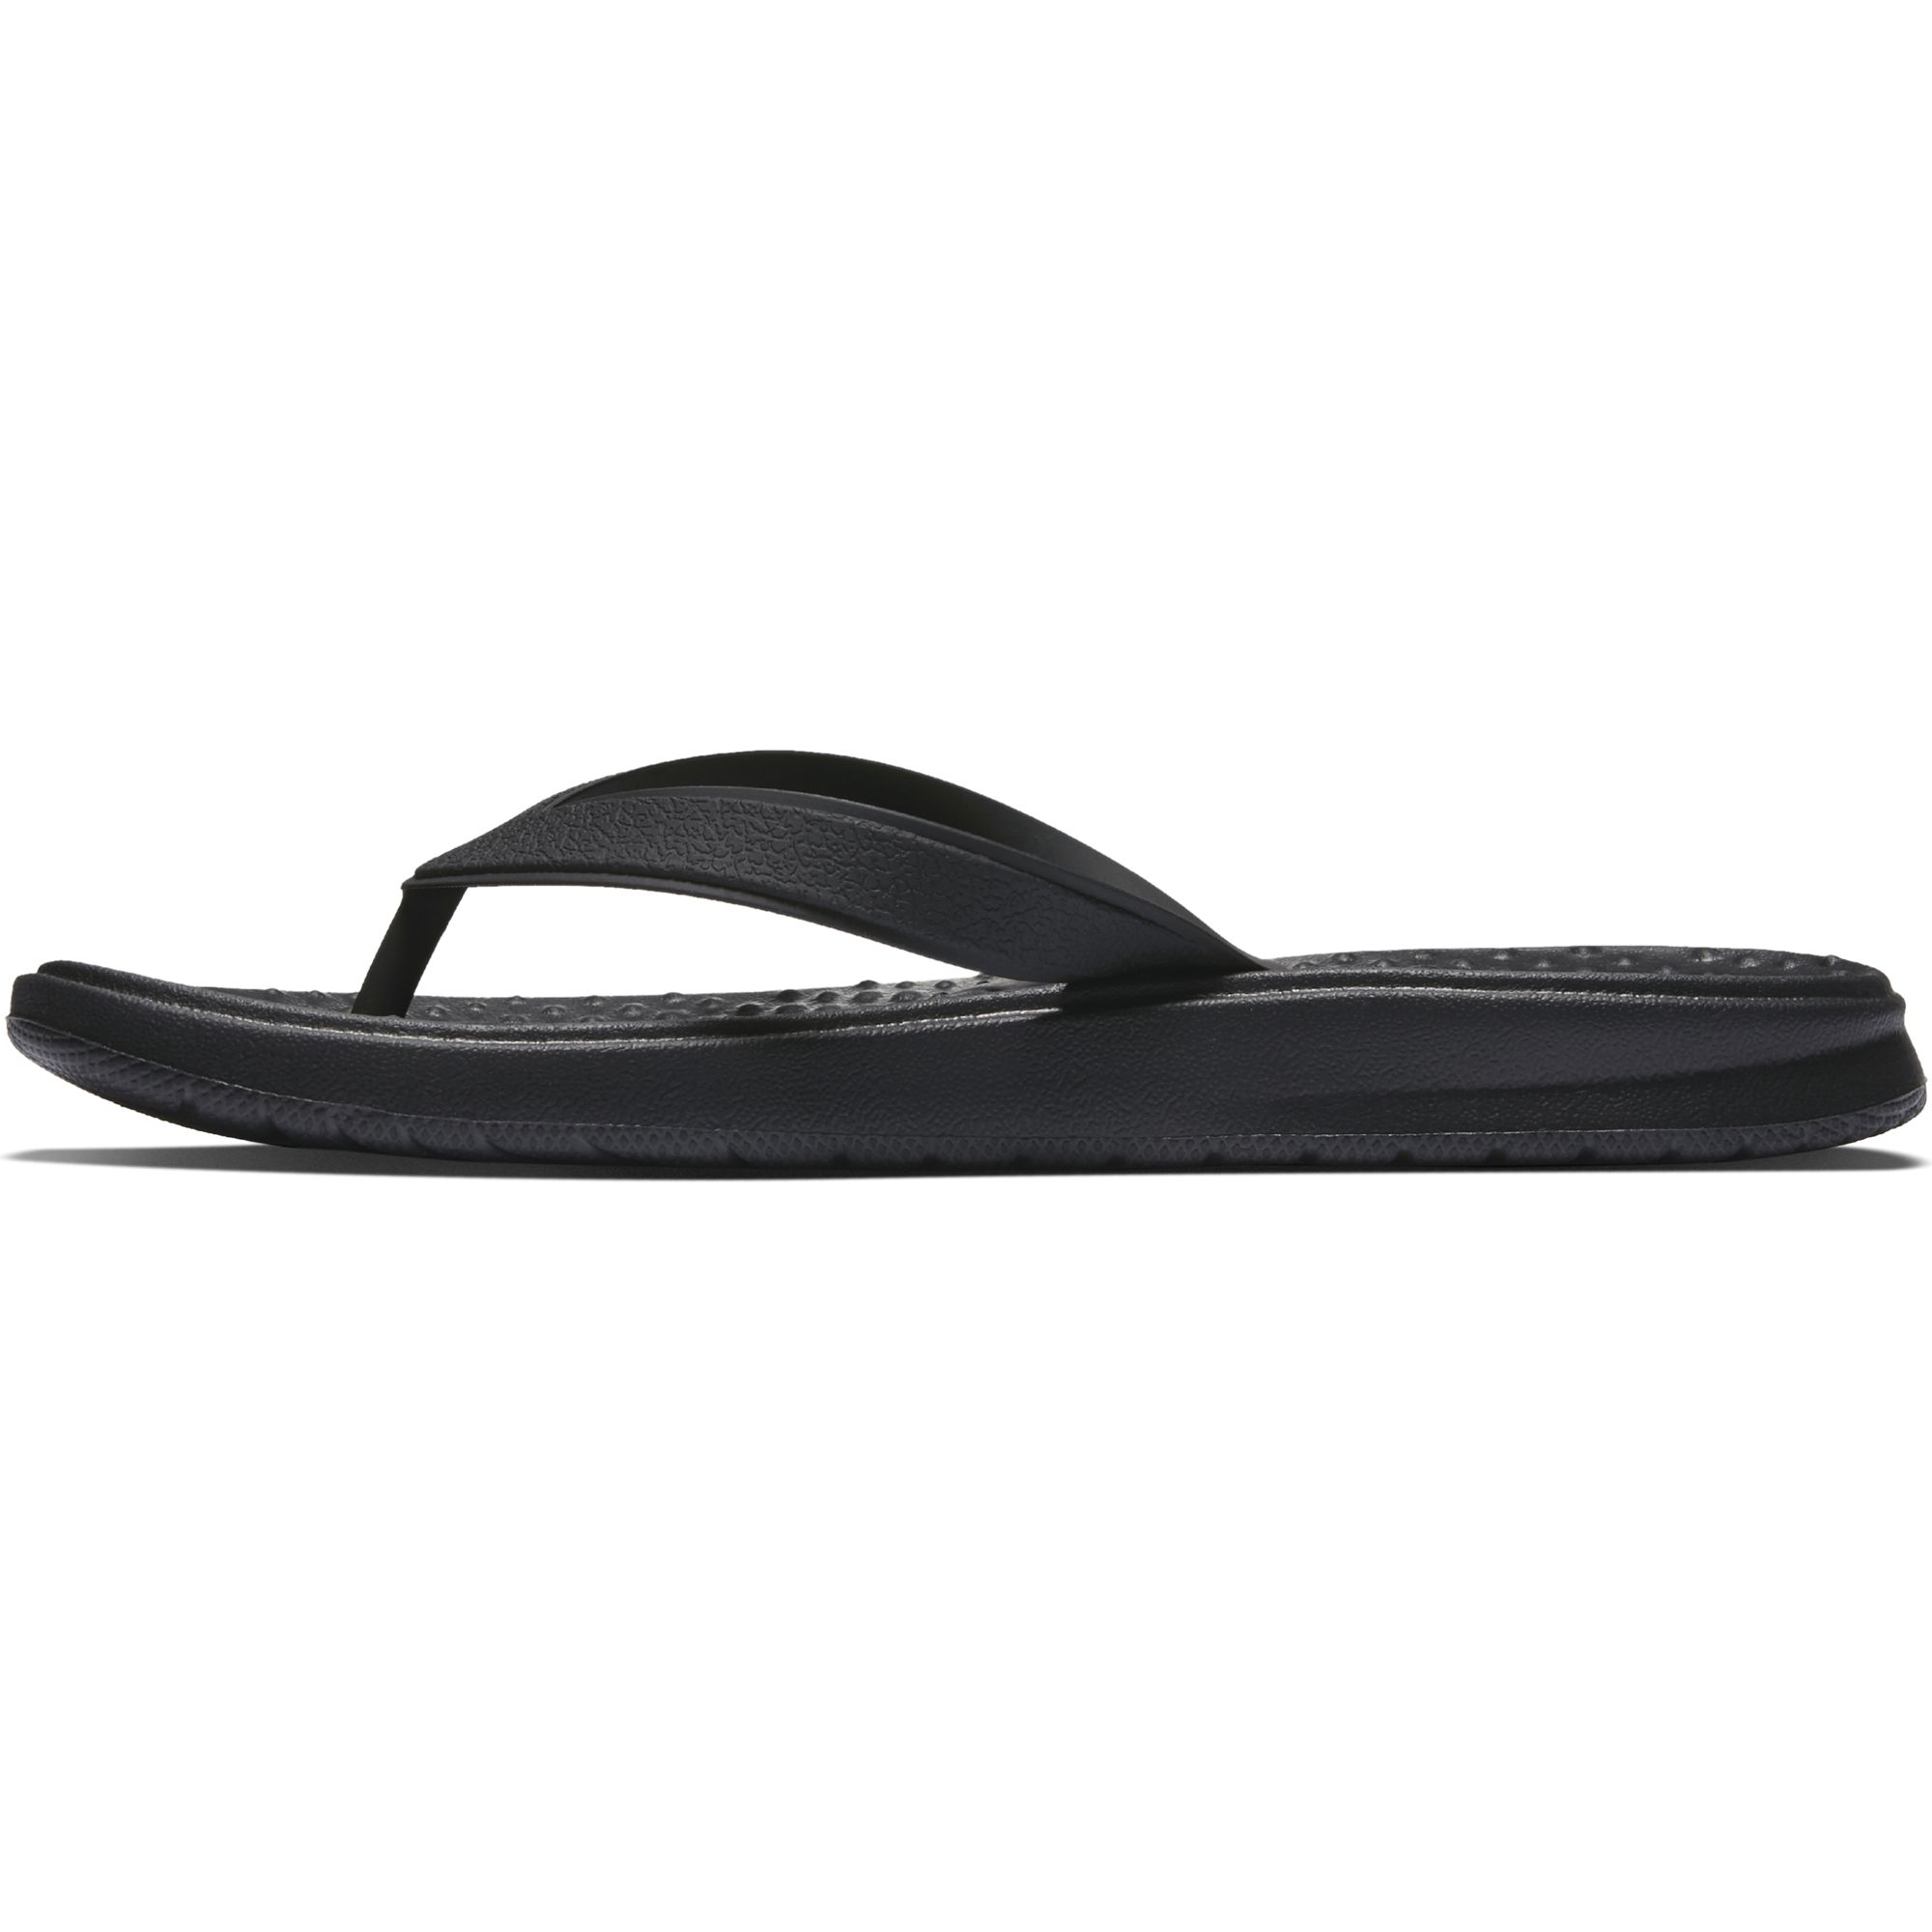 Women's Solay Flip-Flops, , large